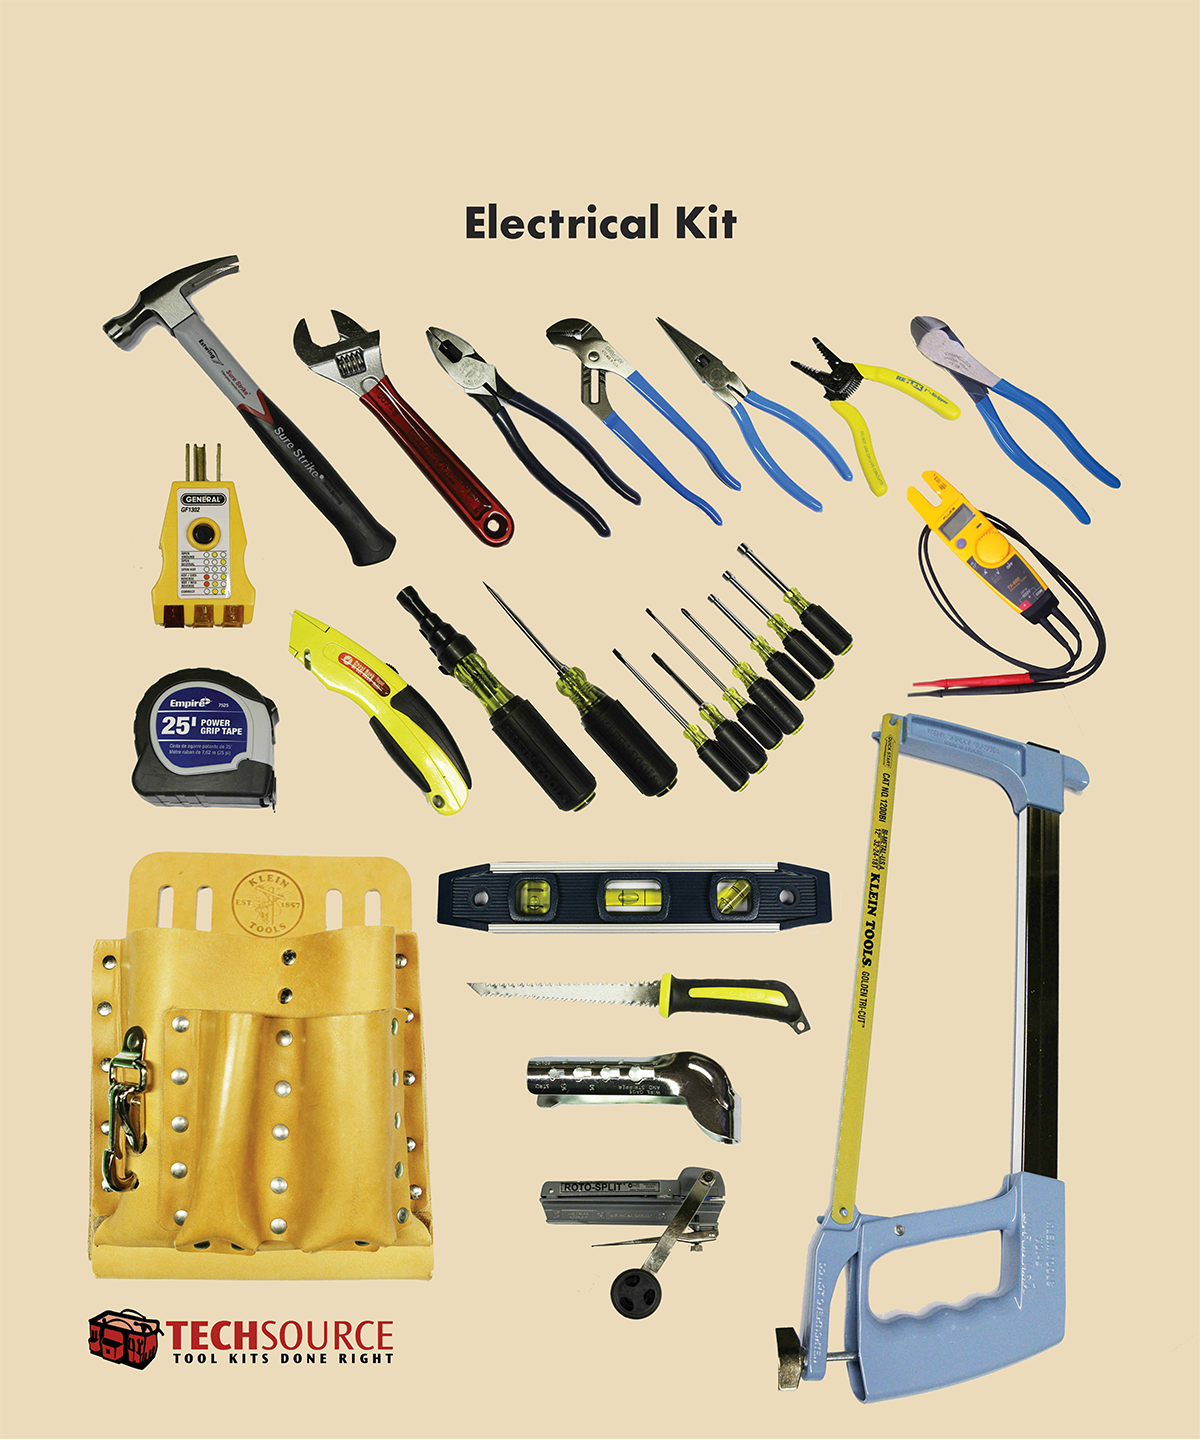 Electrical Kit